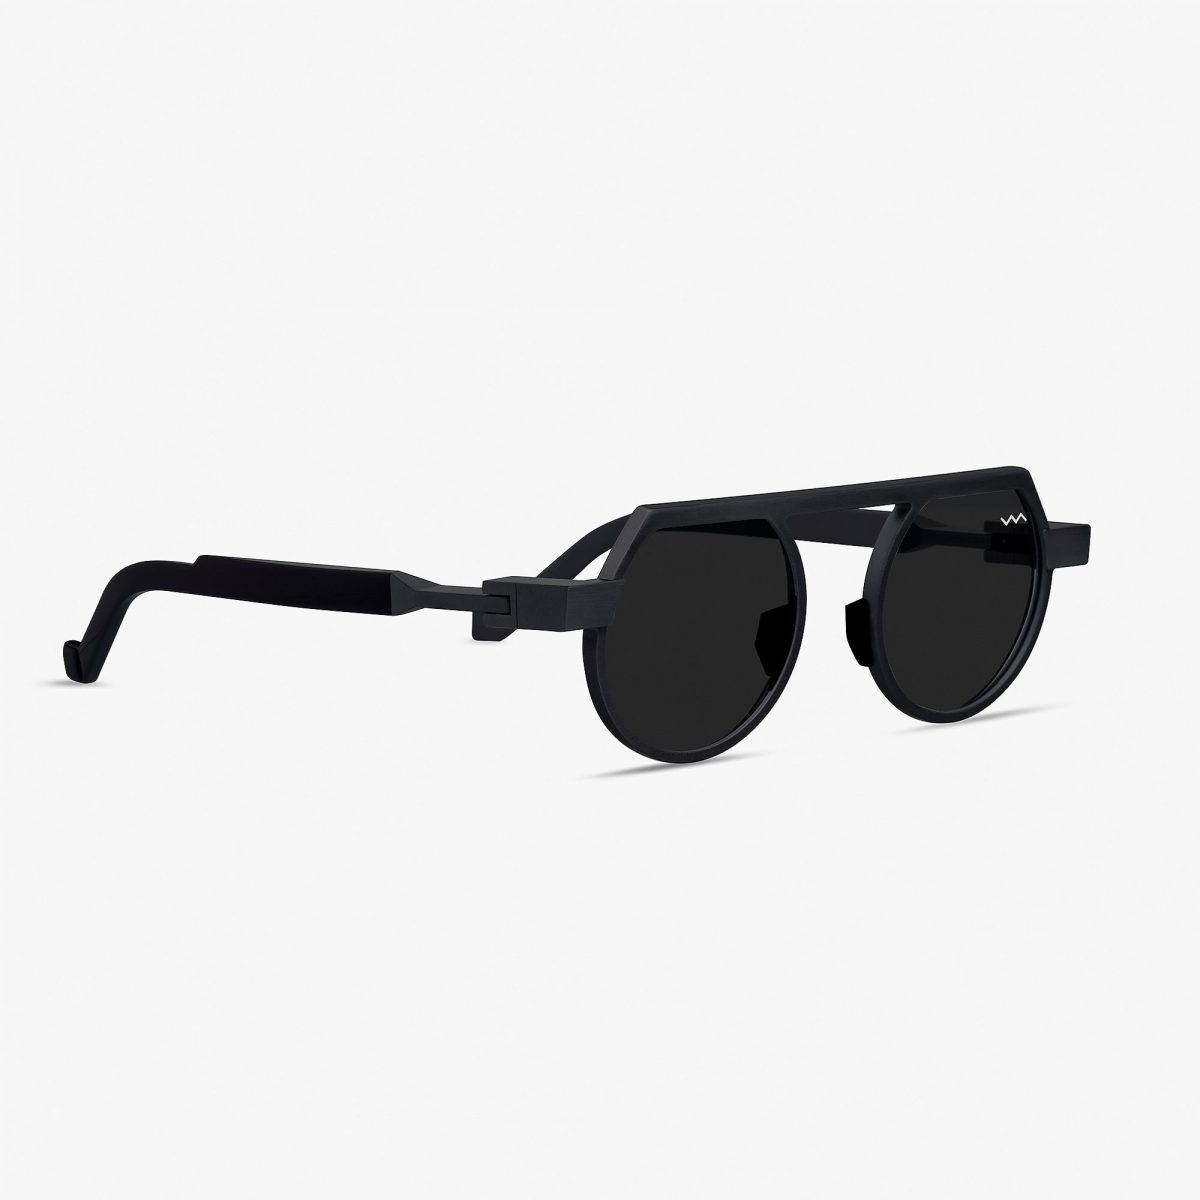 VAVA EYEWEAR ONLINE SHOP BL0019 SIDE BLACK SUNGLASS